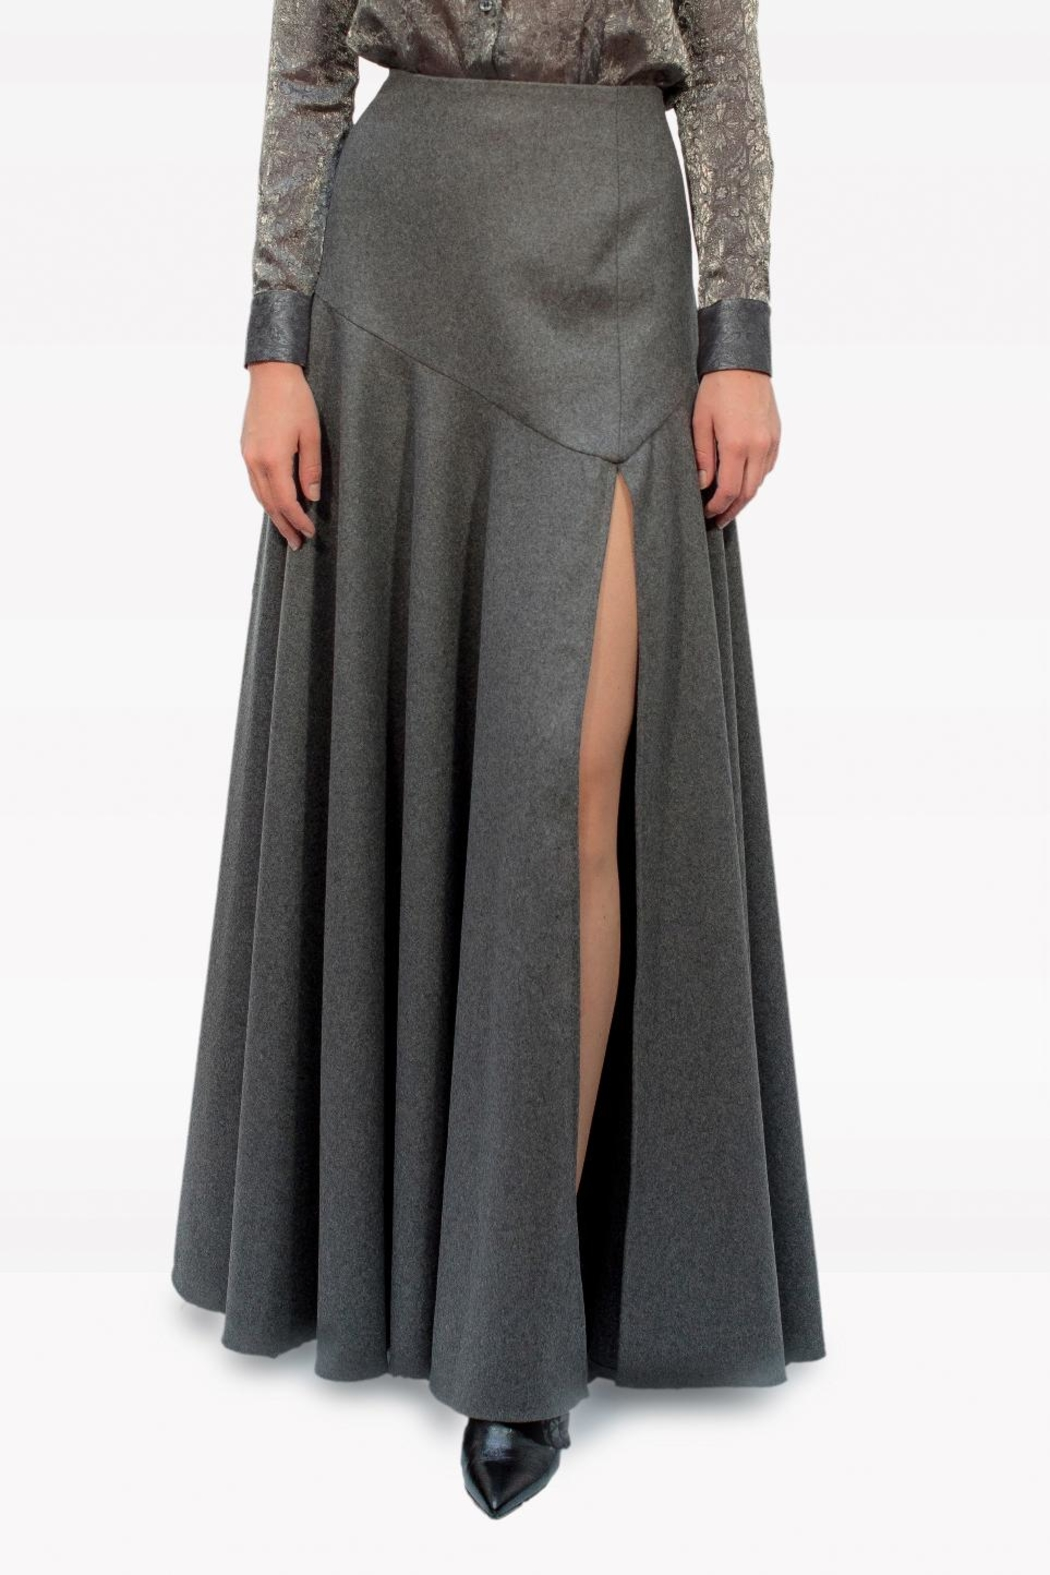 Viesca y Viesca Maxi Wool Skirt - Main Image